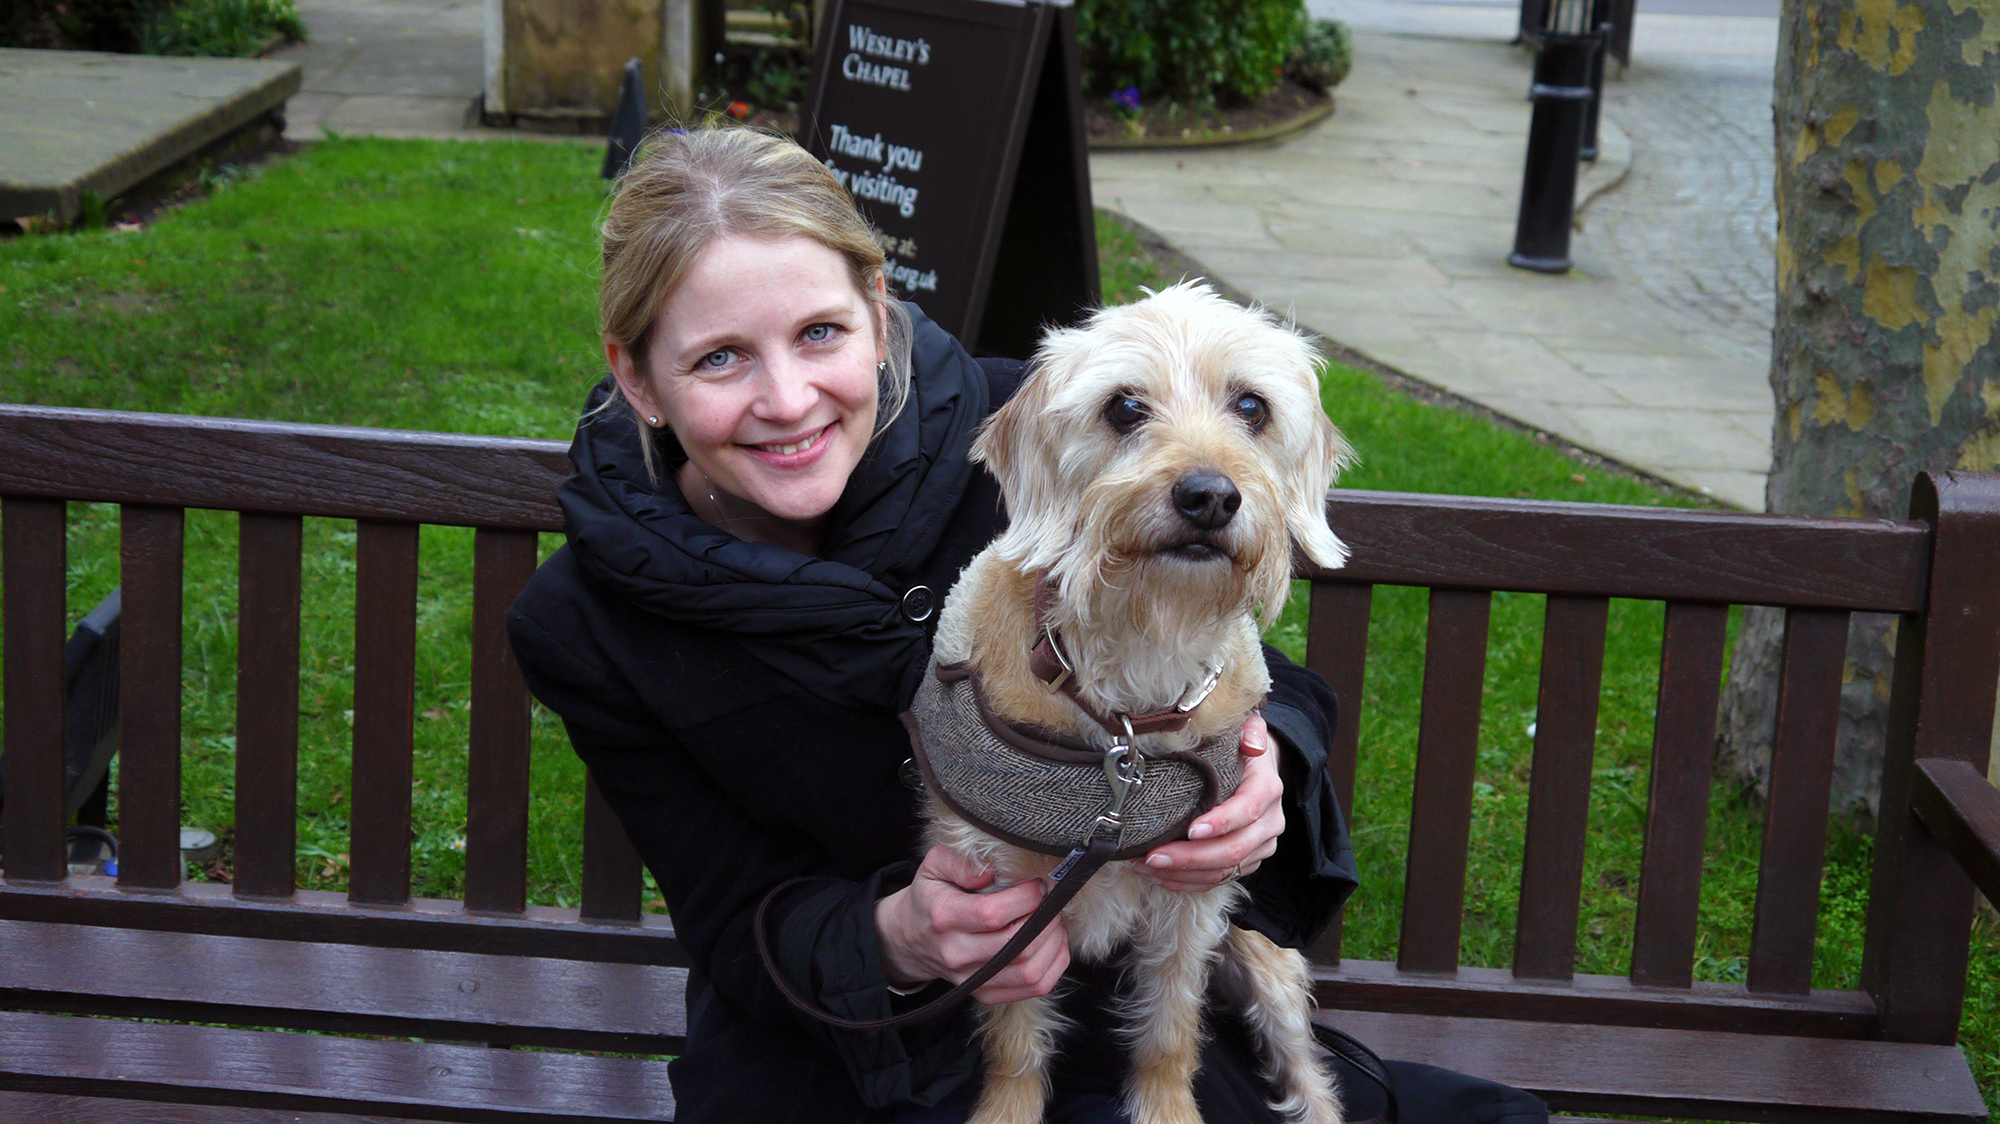 dogwithowner, Borrow My Doggy, borrowing doggy, dog lovers, london dog lovers, dogs, dog walkers, cute, puppy